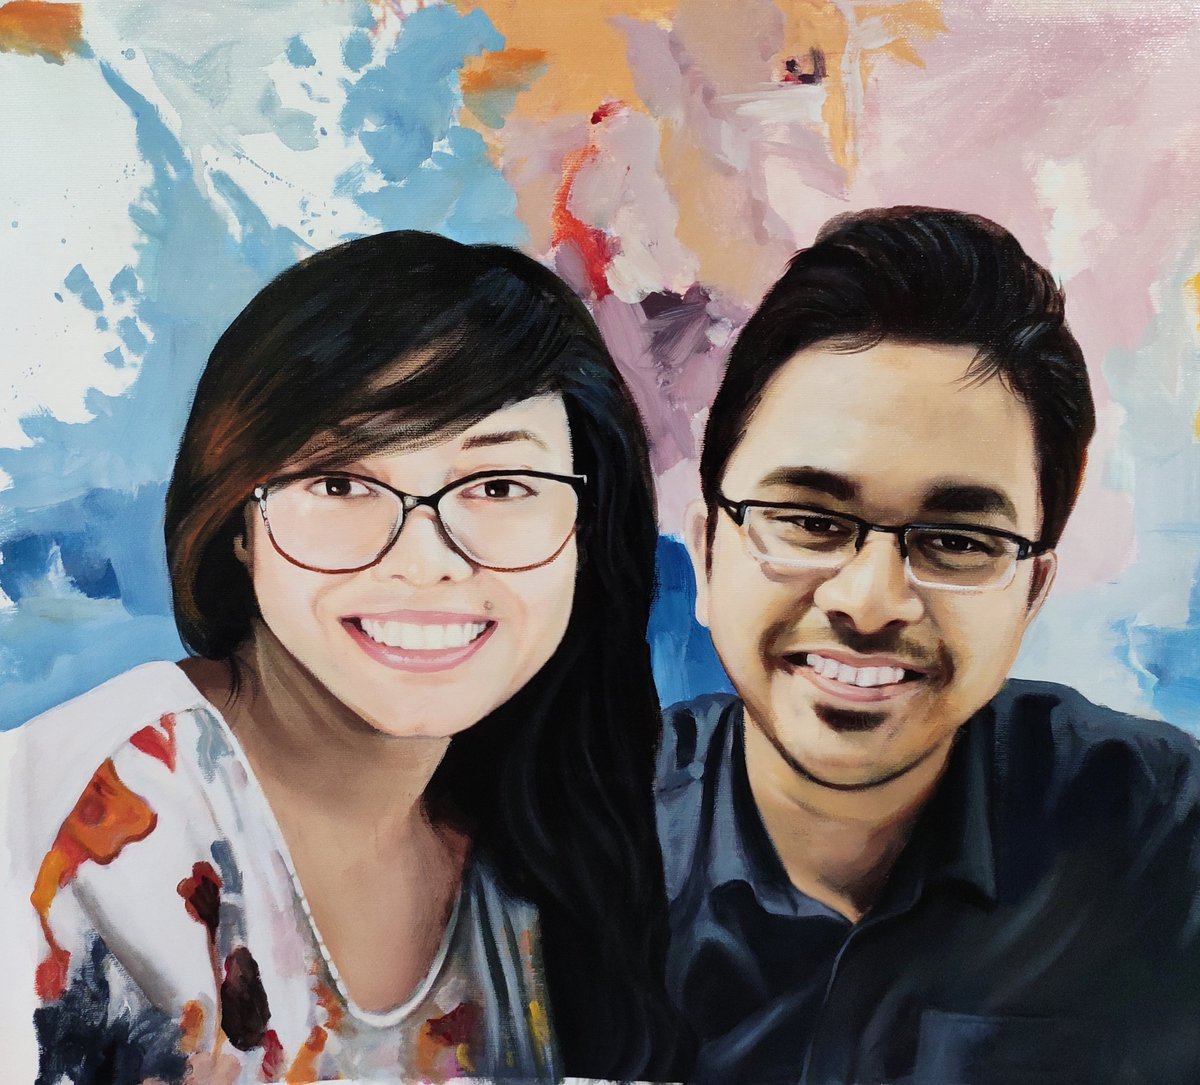 Take my breath away! Oil portrait painting on canvas Size: 20 inches x 16 inches A Valentines day gift to remember. Have you got yours? 🤔   #love #romance #lifeisbeautiful #photooftheday #portrait #painting #portraitpainting #portraitart #paintphotographs